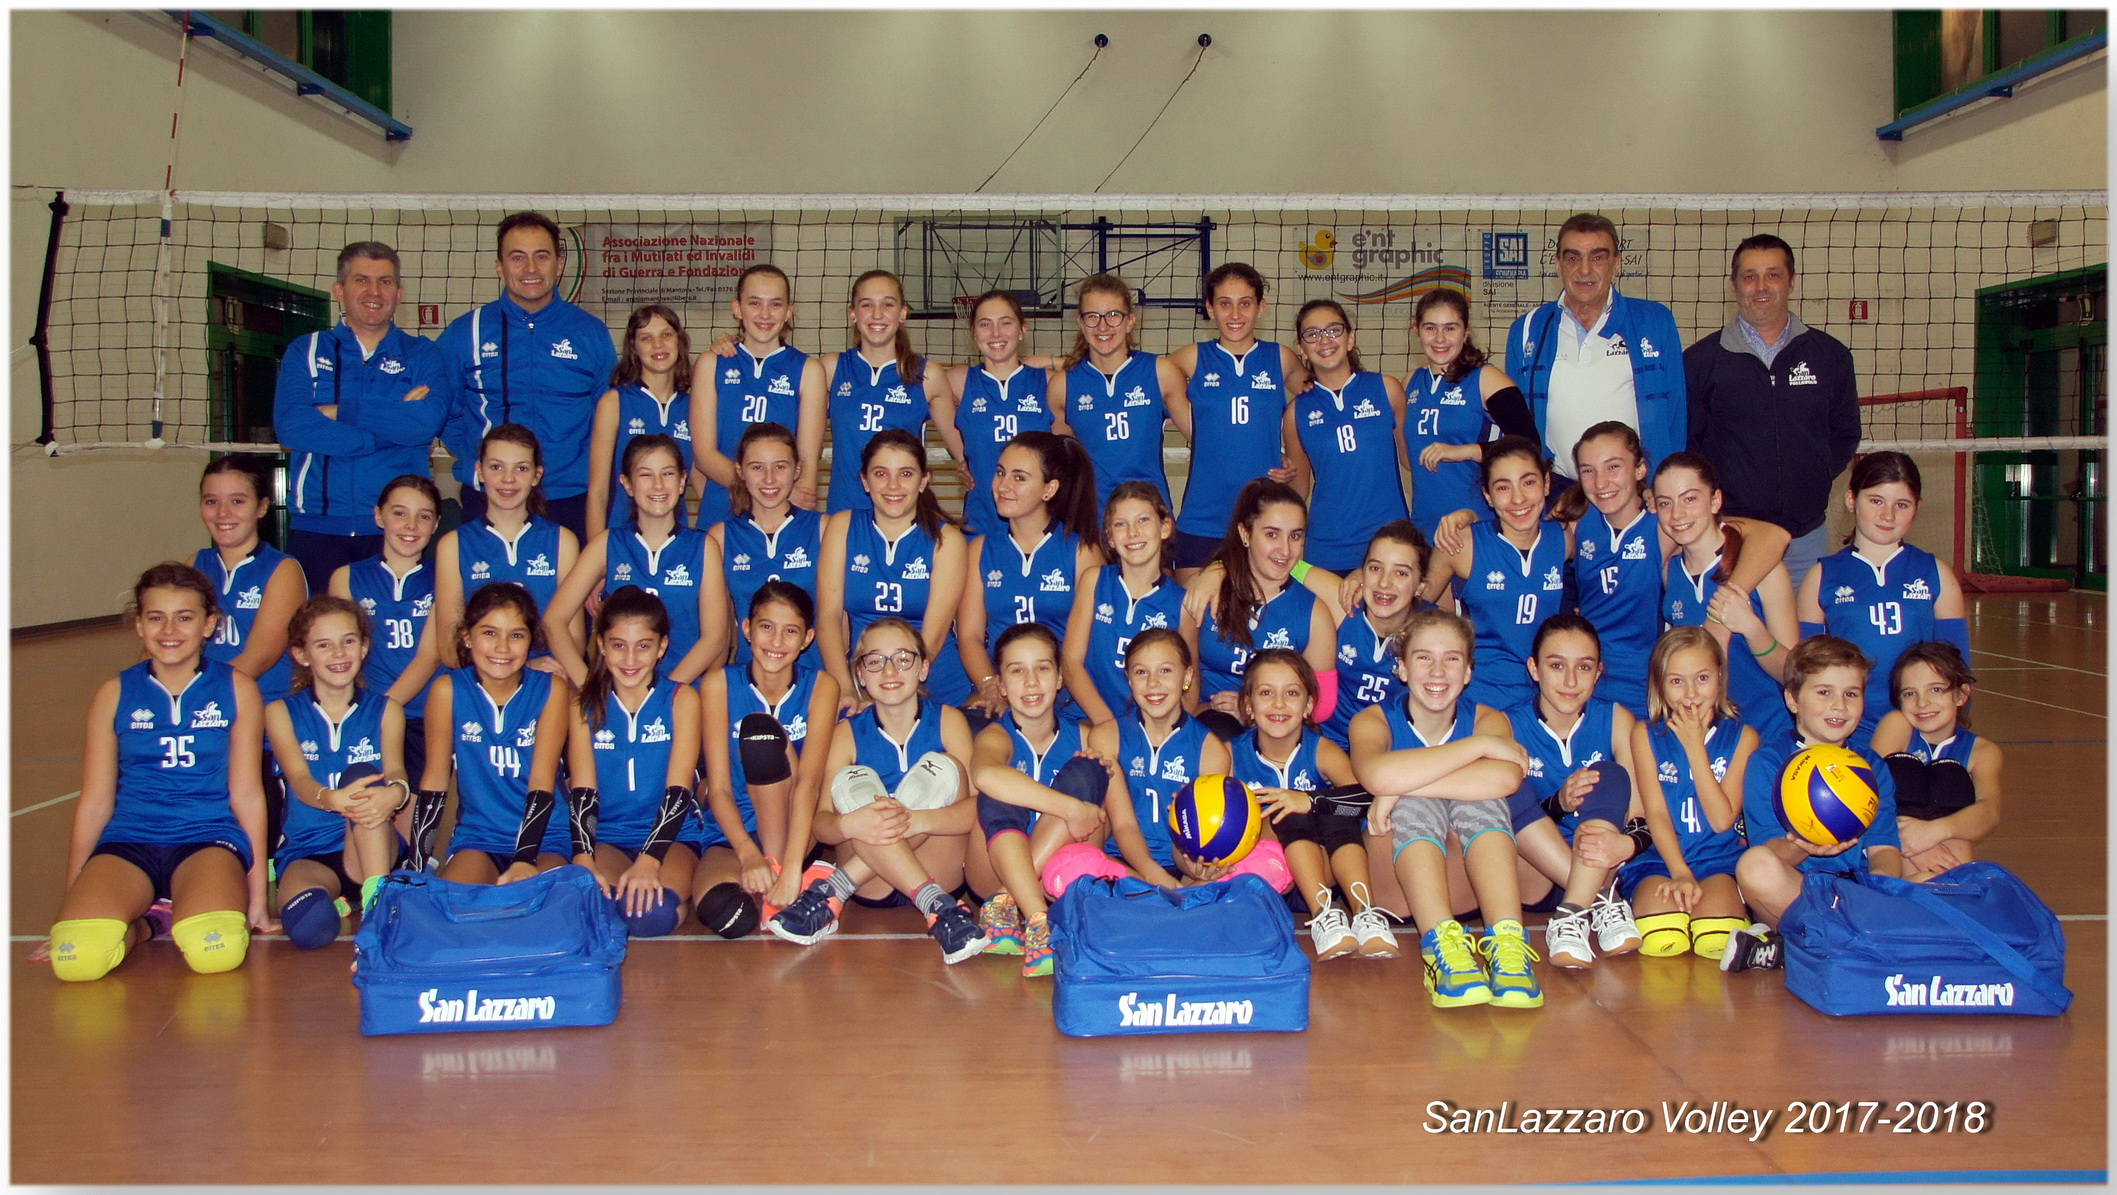 SanLazzaro-Volley-2017-2018B_r